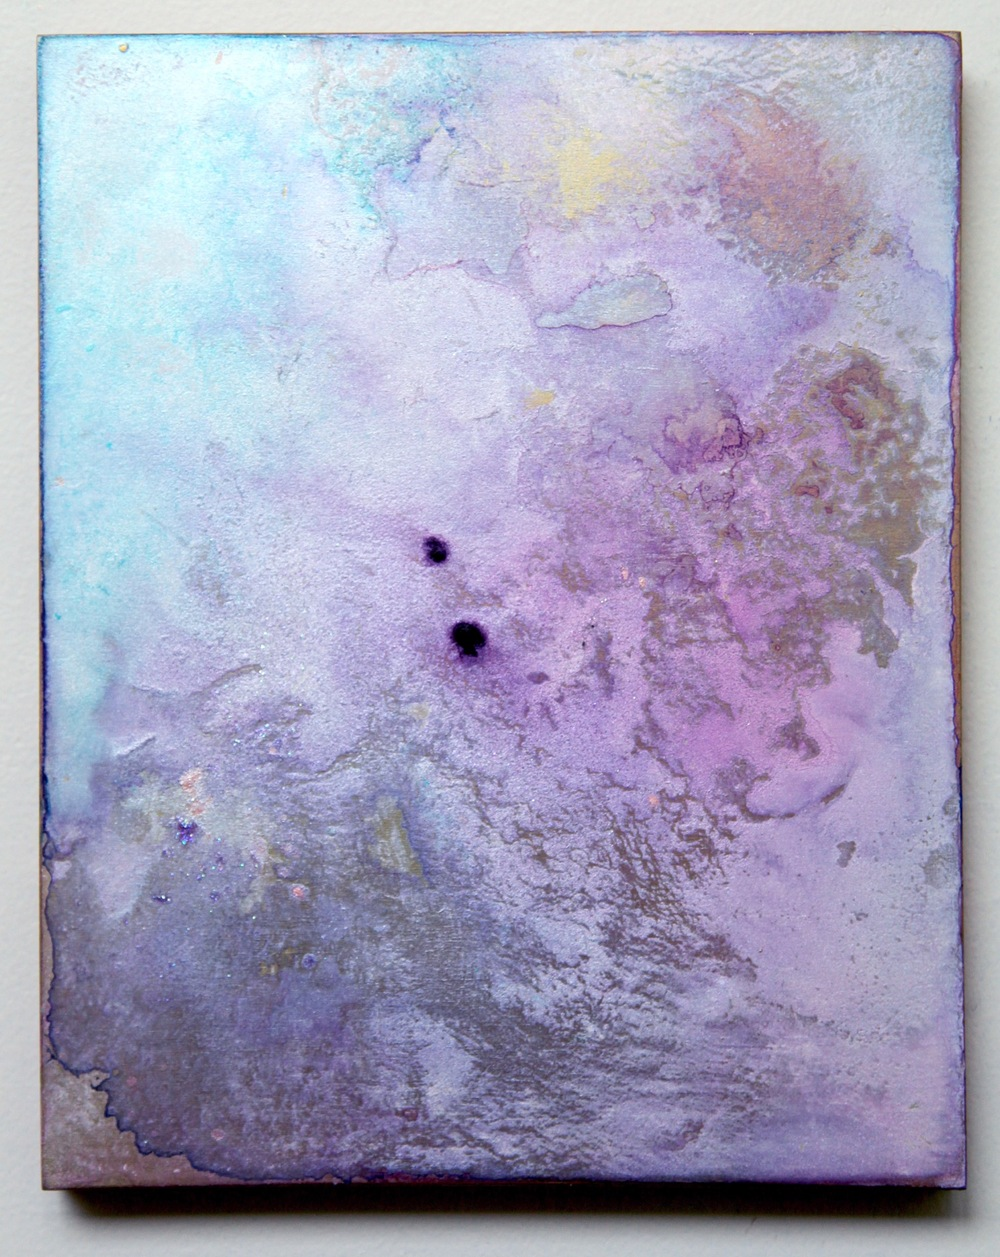 T1( Transience Series )  2015  Acrylic and metal powder on board  H27.3cm x W22cm